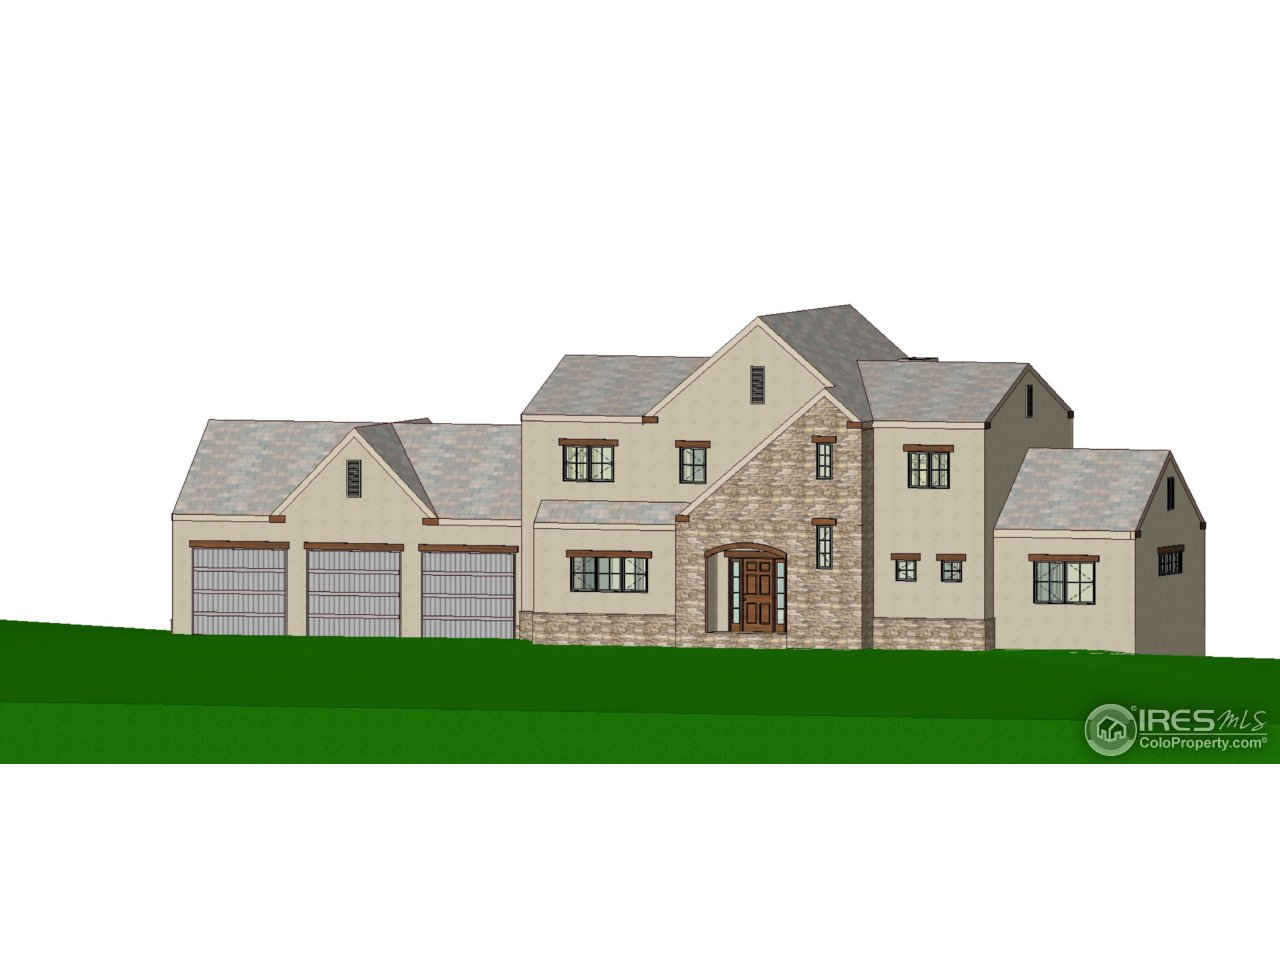 4802 Corsica Dr, Fort Collins, CO 80526